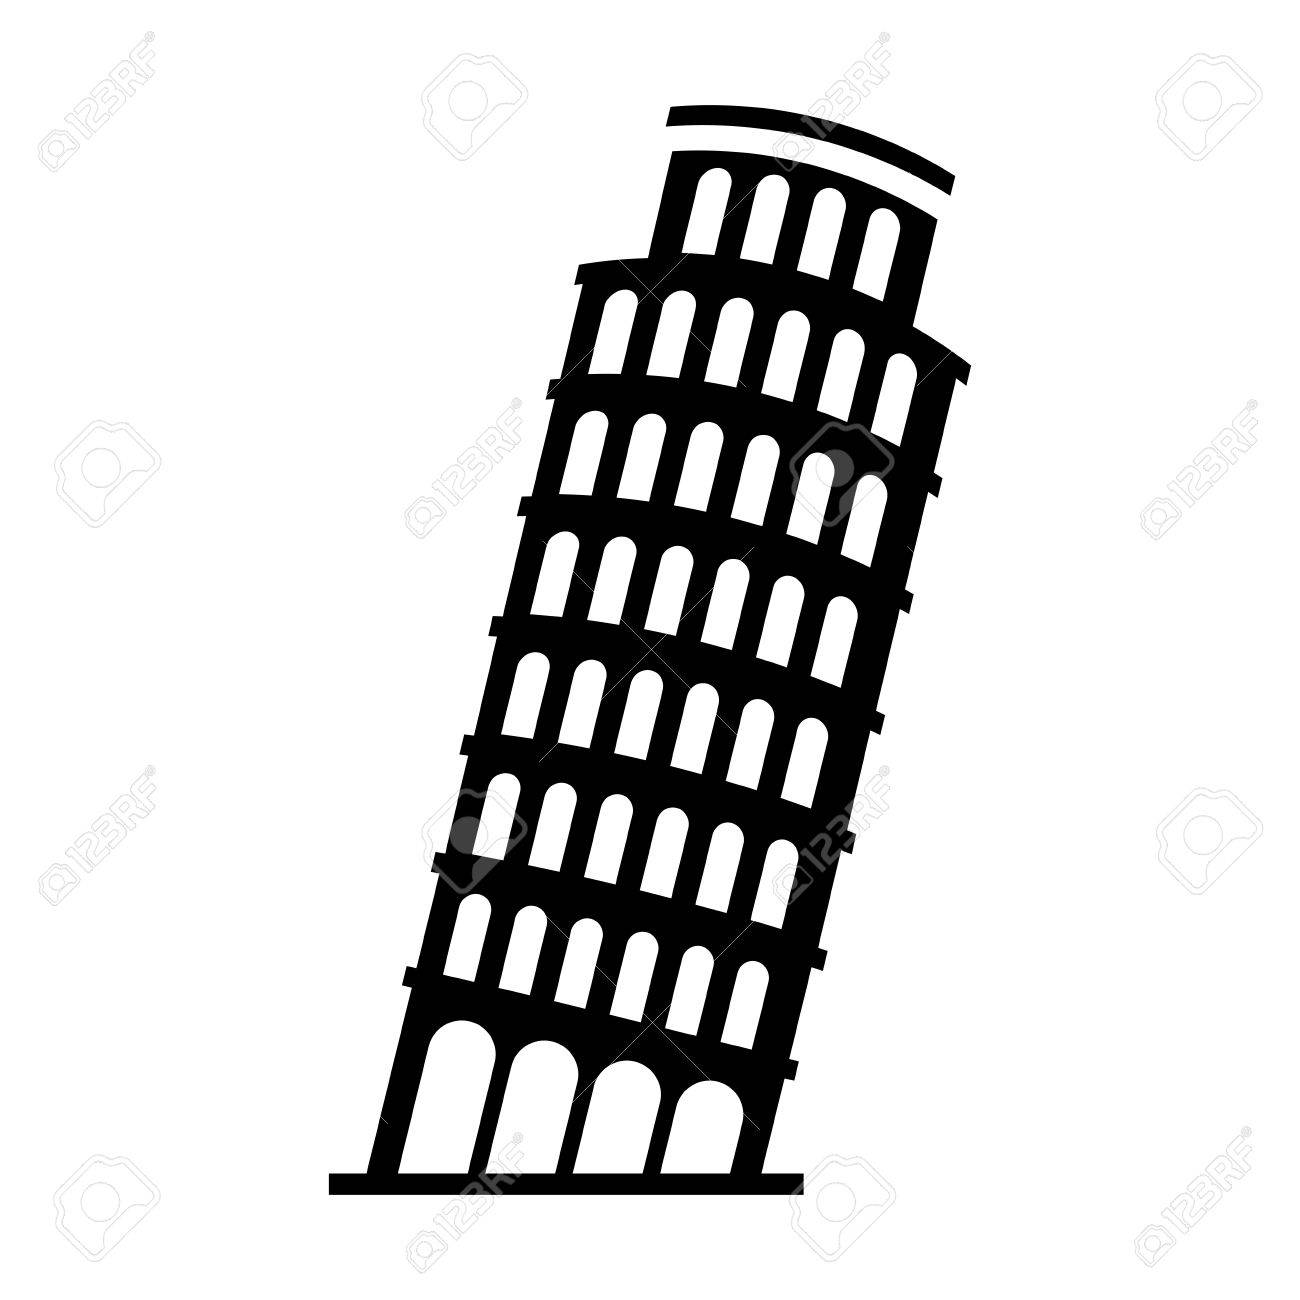 Tower clipart piza clipart.